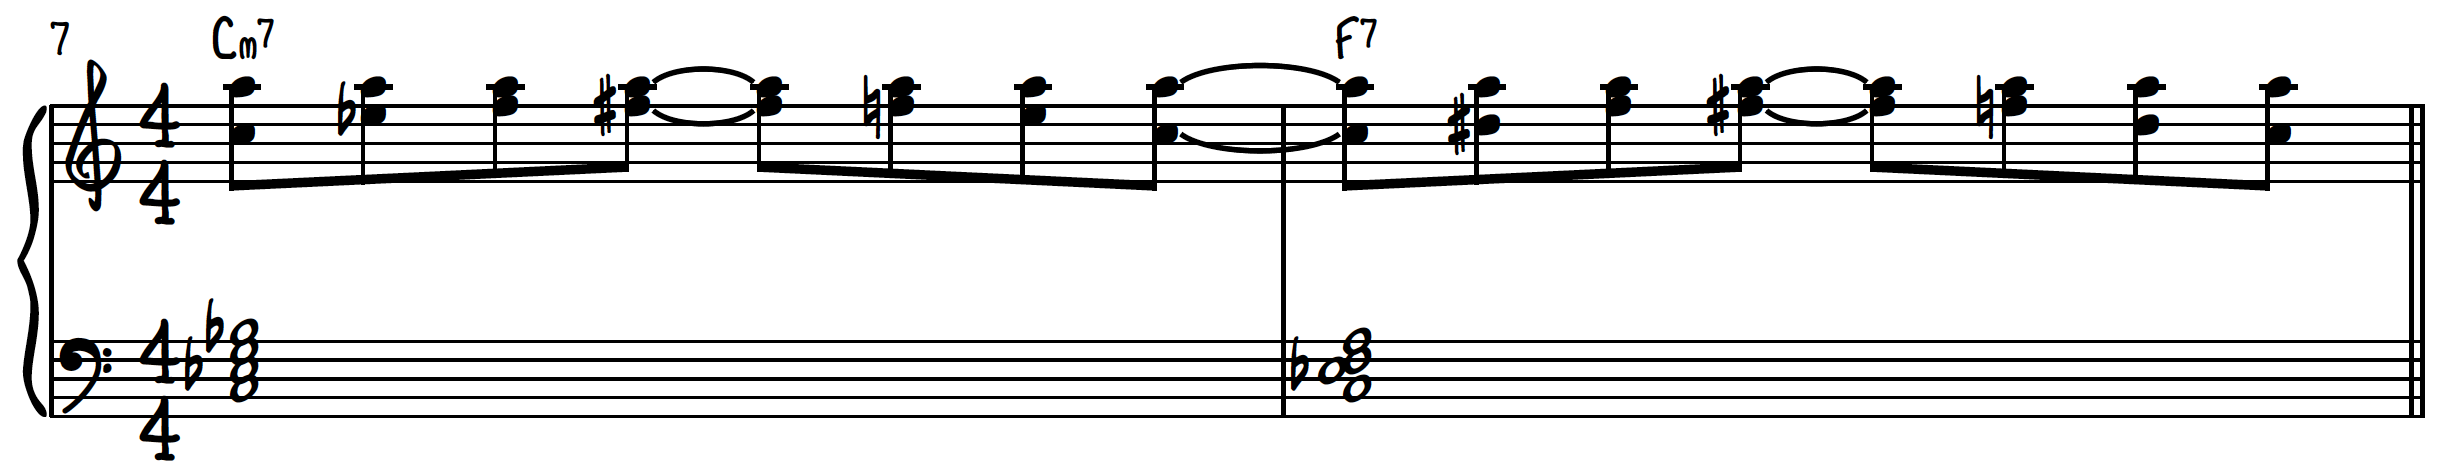 8th note exercise for smooth jazz piano